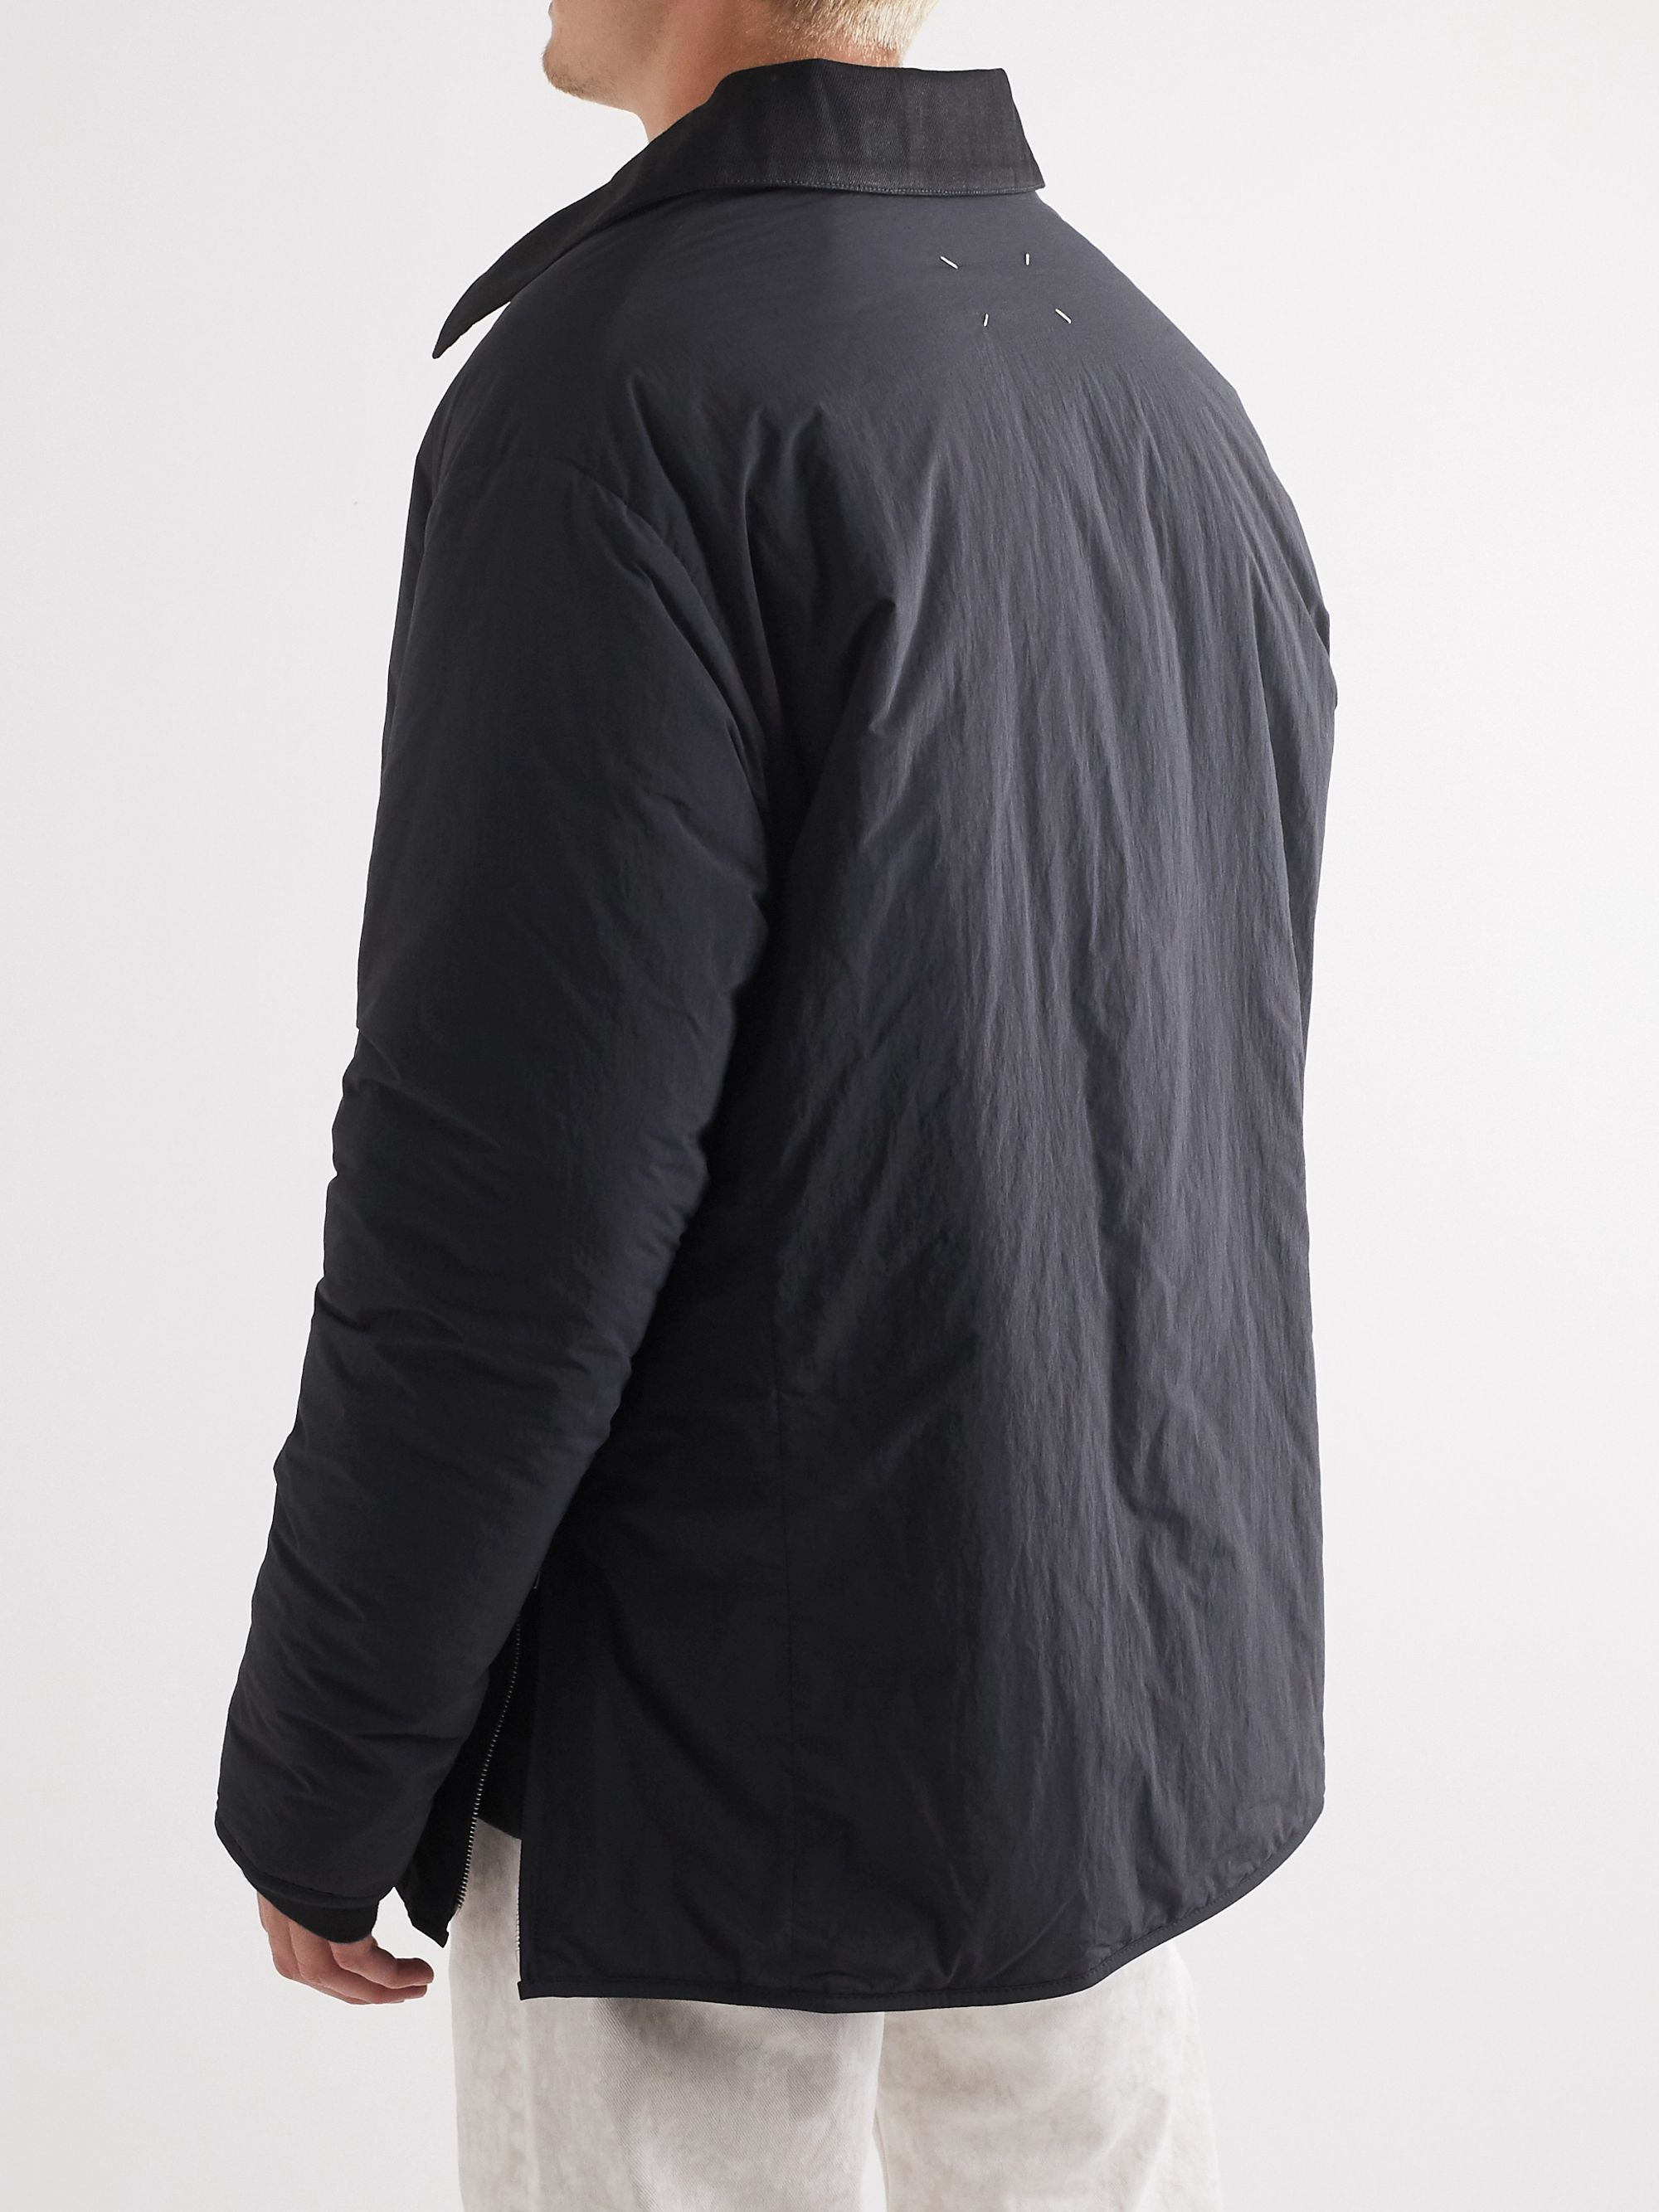 Maison Margiela Cotton-Blend Twill-Trimmed Shell Jacket